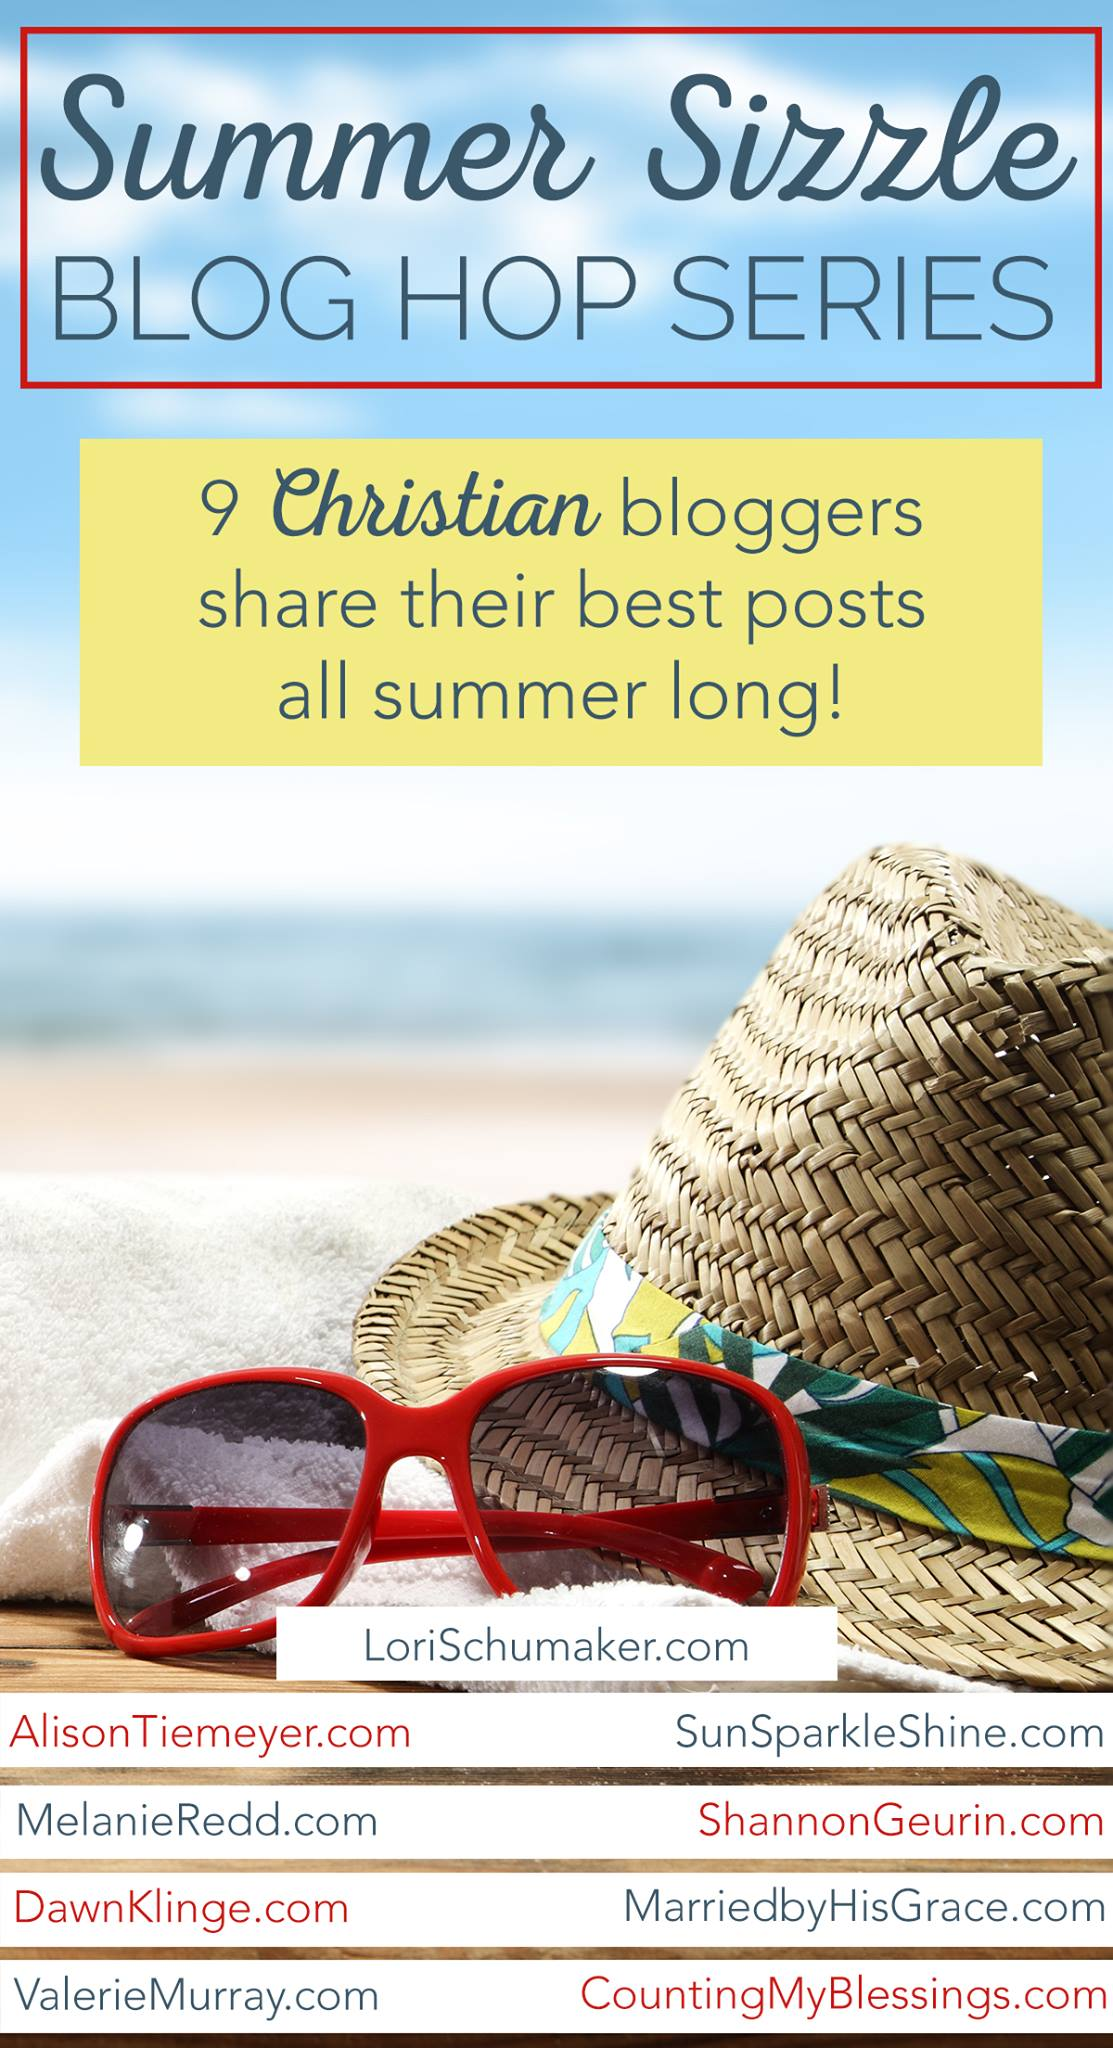 Summer Sizzle - all the best posts from 9 Christian bloggers | SunSparkleShine.com